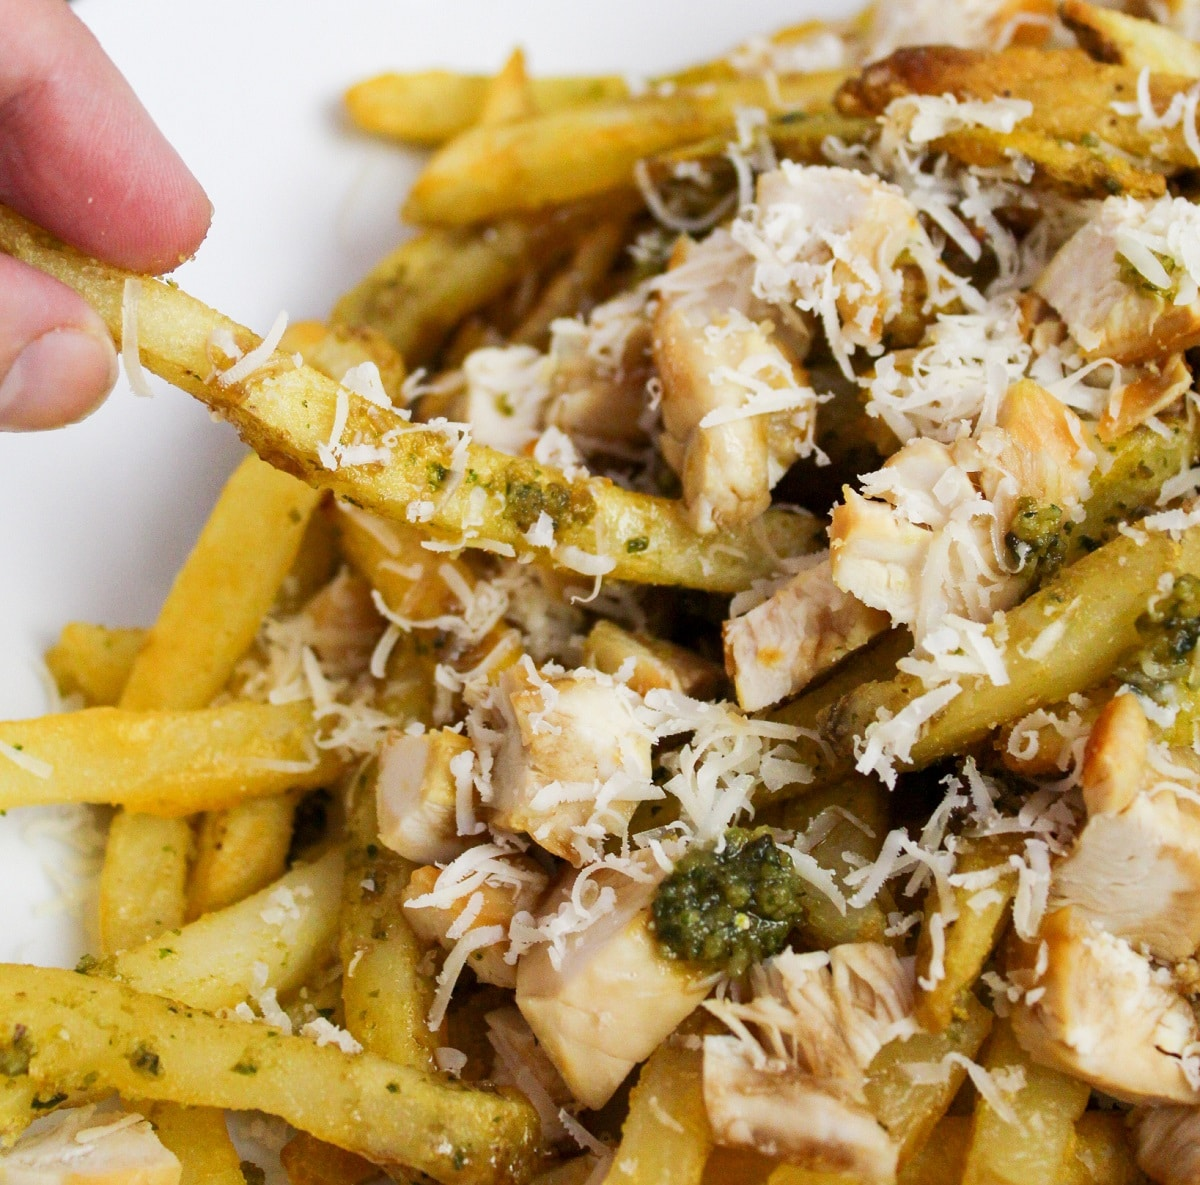 Pesto Chicken Fries with hand grabbing a fry